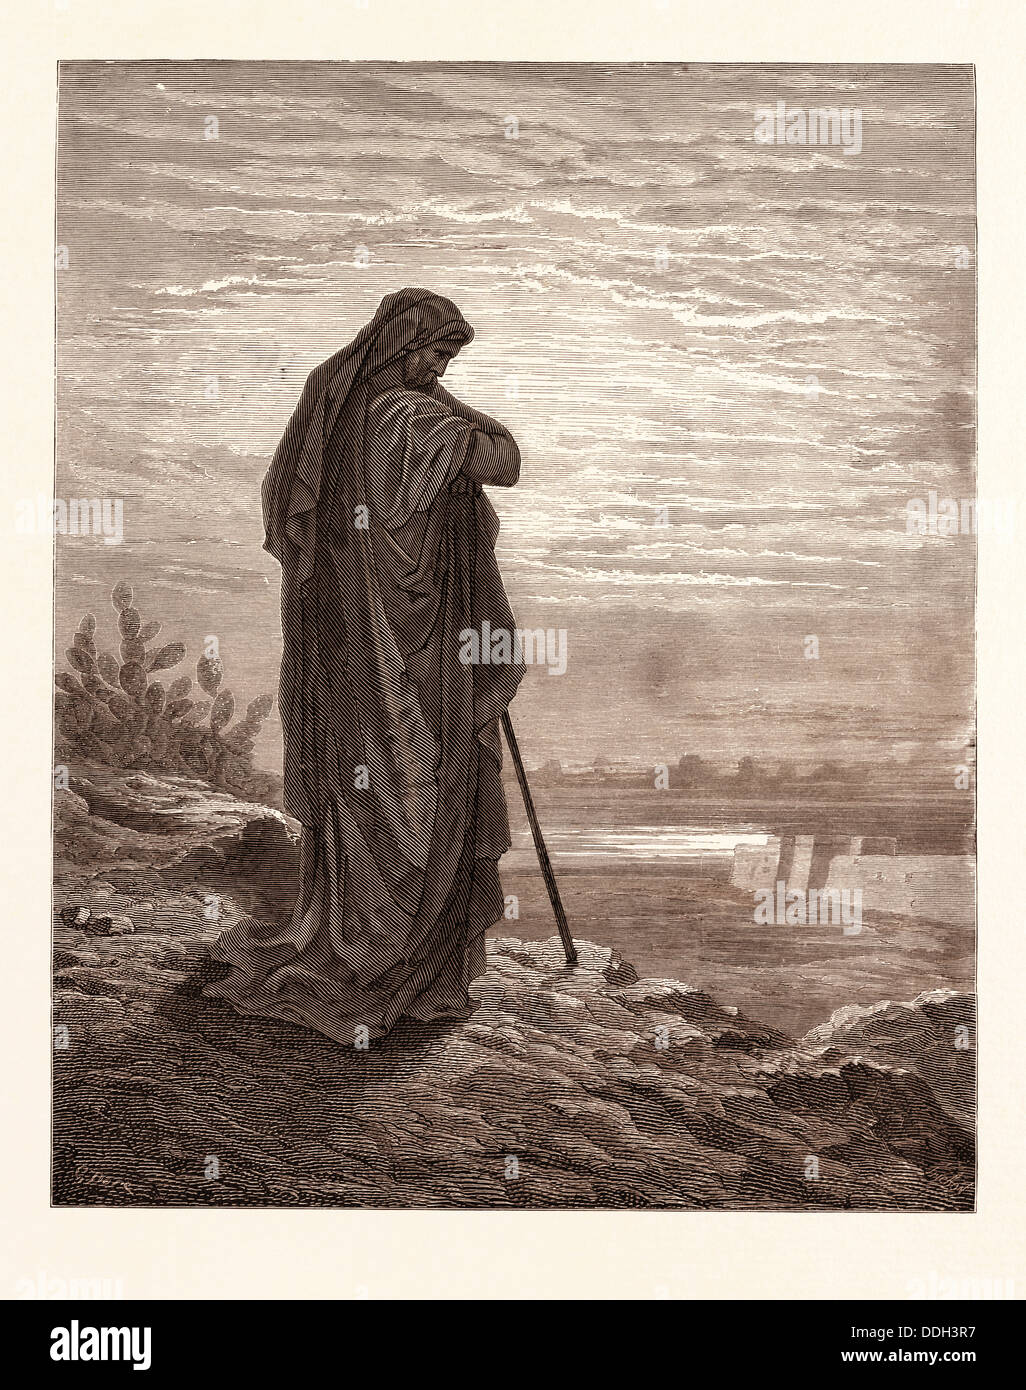 AMOS THE PROPHET, BY GUSTAVE DORÉ. Dore, 1832 - 1883, French. Engraving for the Bible. 1870, Art, Artist, holy - Stock Image